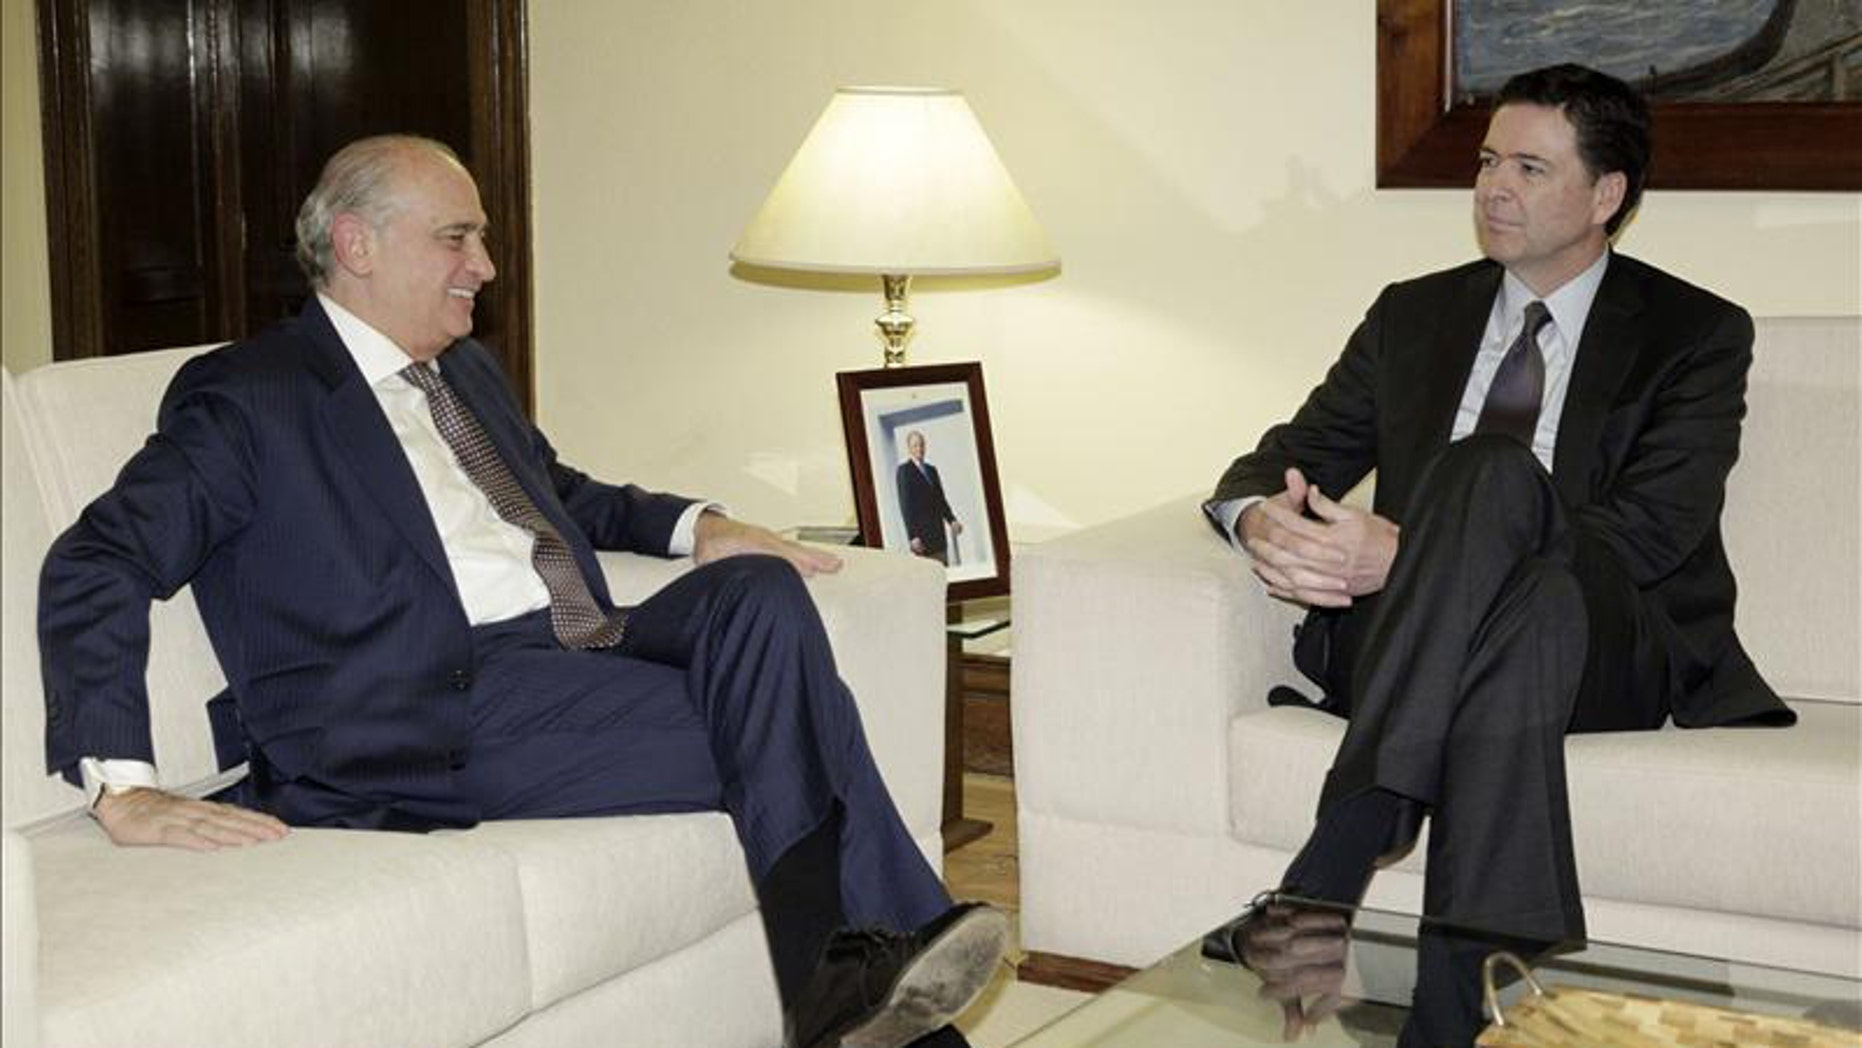 Spanish Interior Minister Jorge Fernandez Diaz and FBI Director James B. Comey at the Interior Ministry in Madrid.